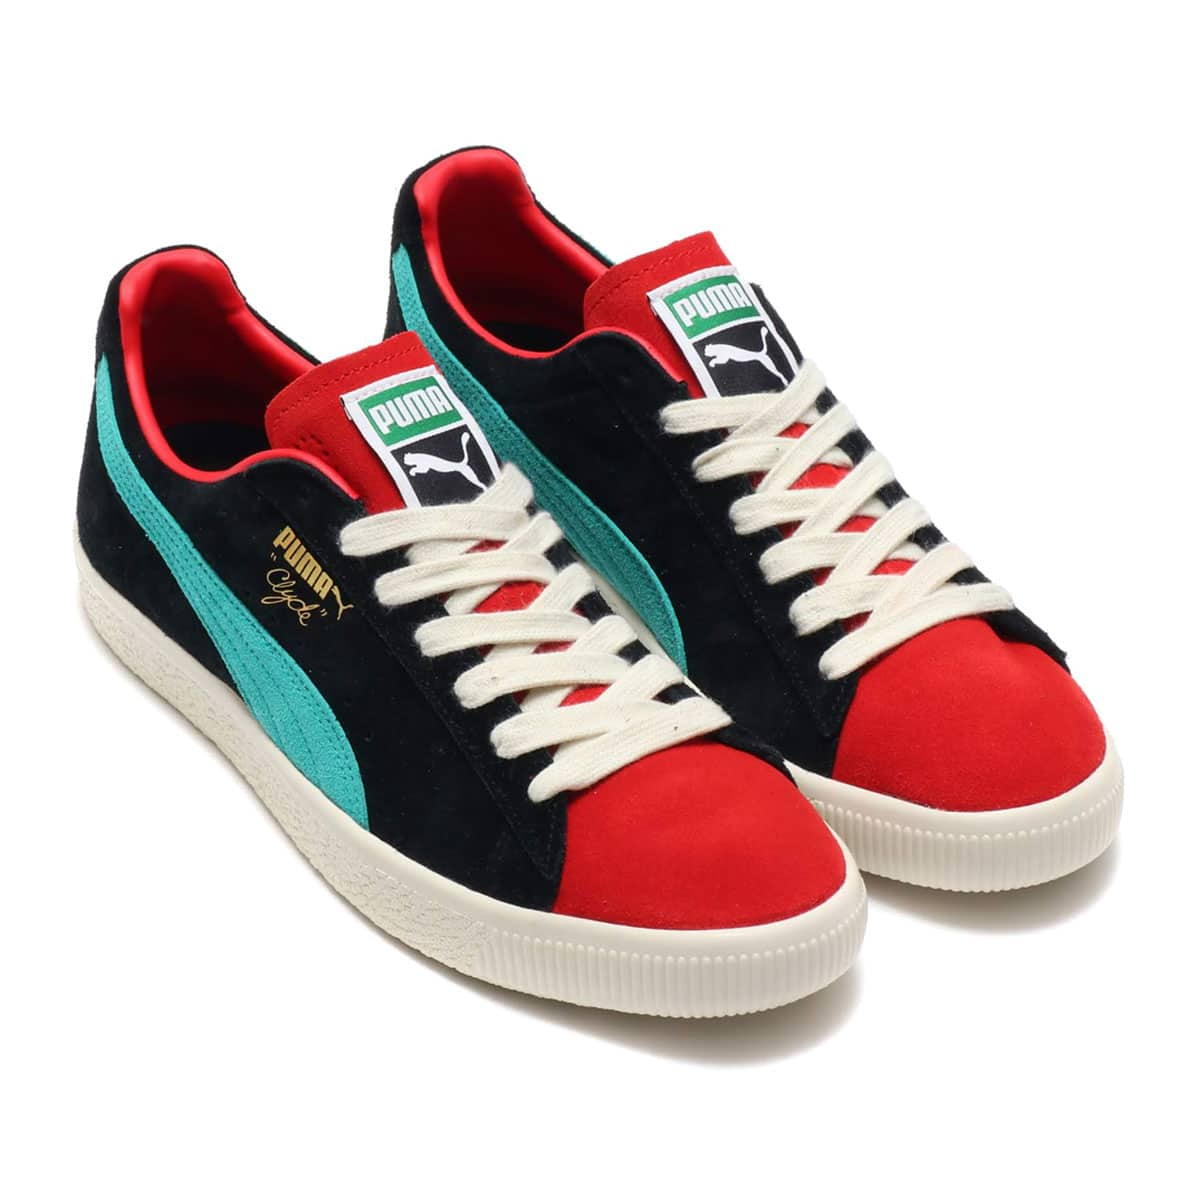 new styles cb1b6 233b3 PUMA CLYDE FROM THE ARCHIVE HIGH RISK RED